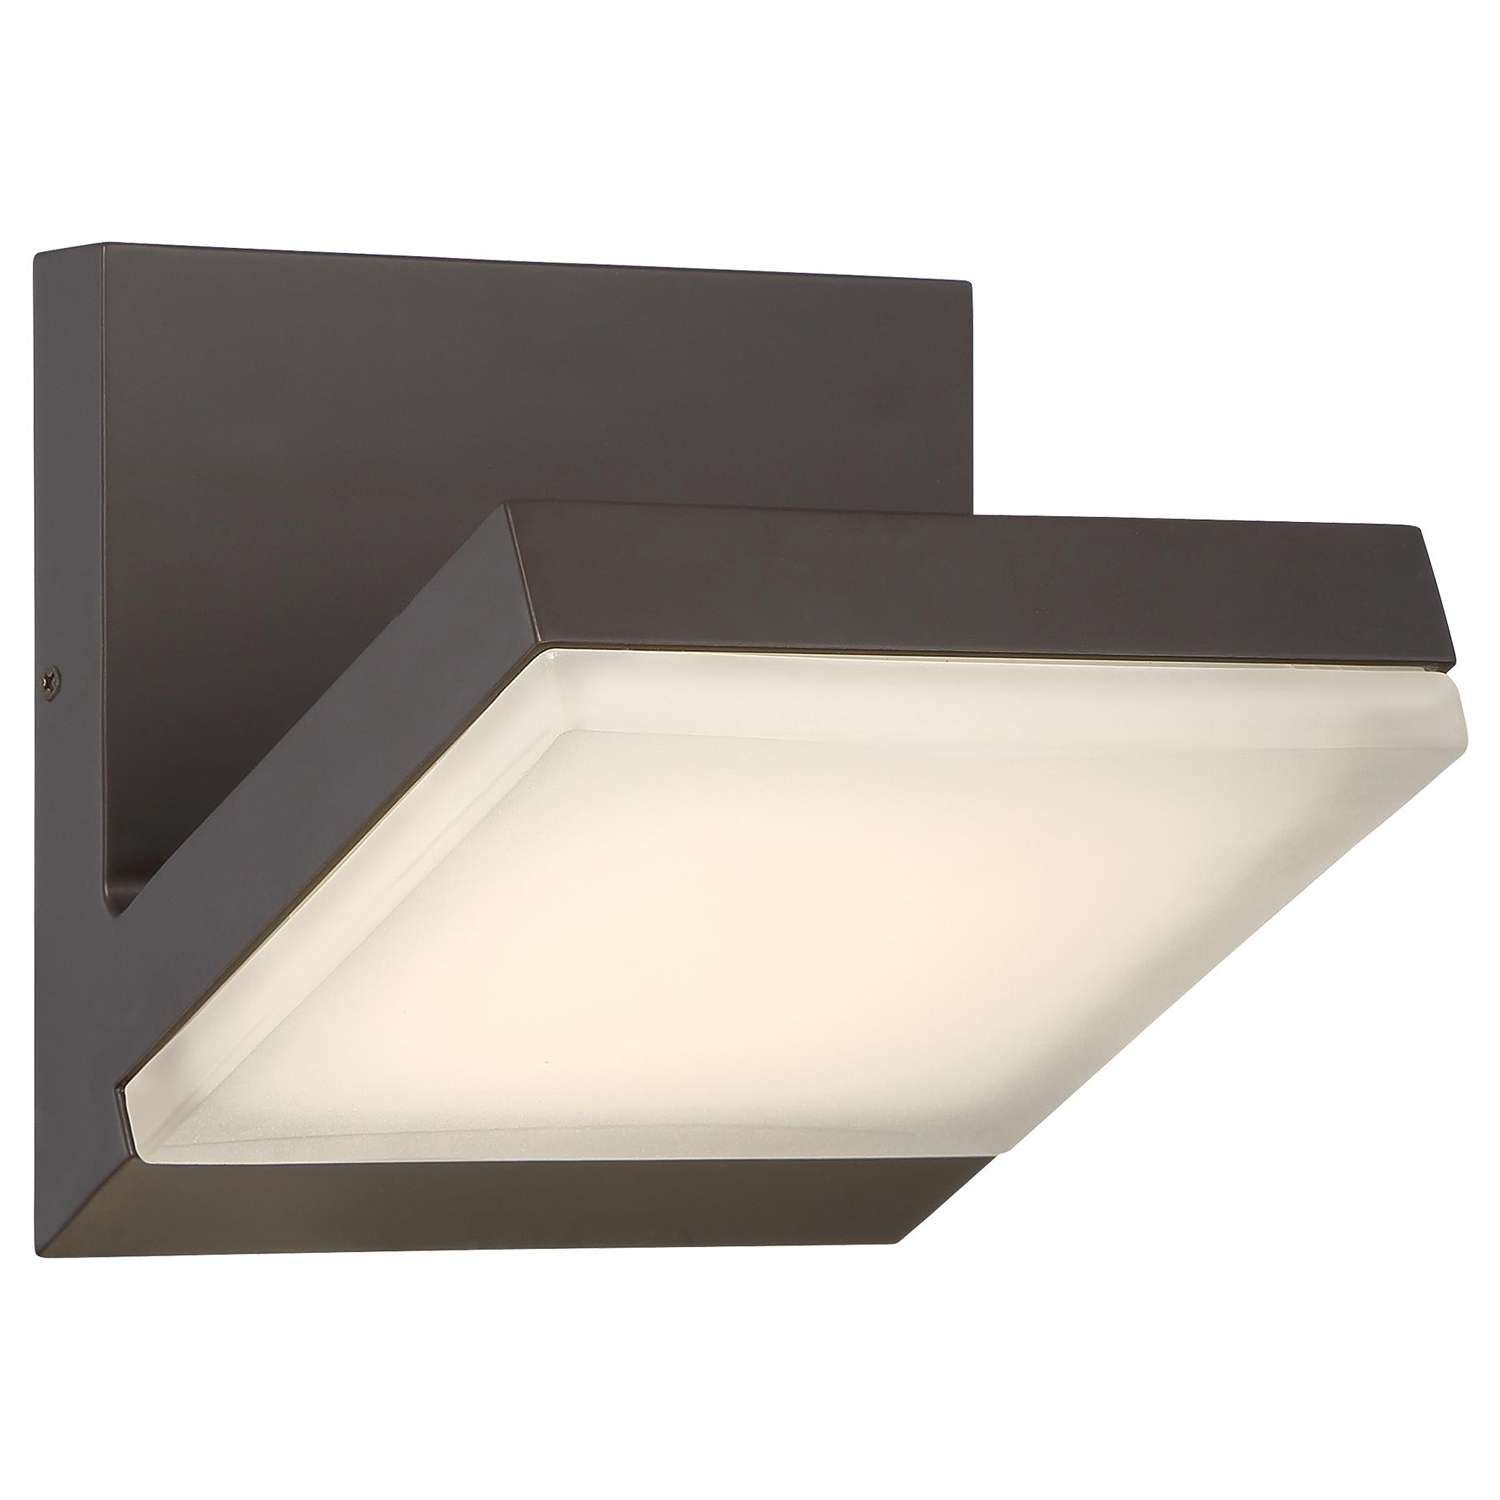 Angle LED Outdoor Wall Sconce